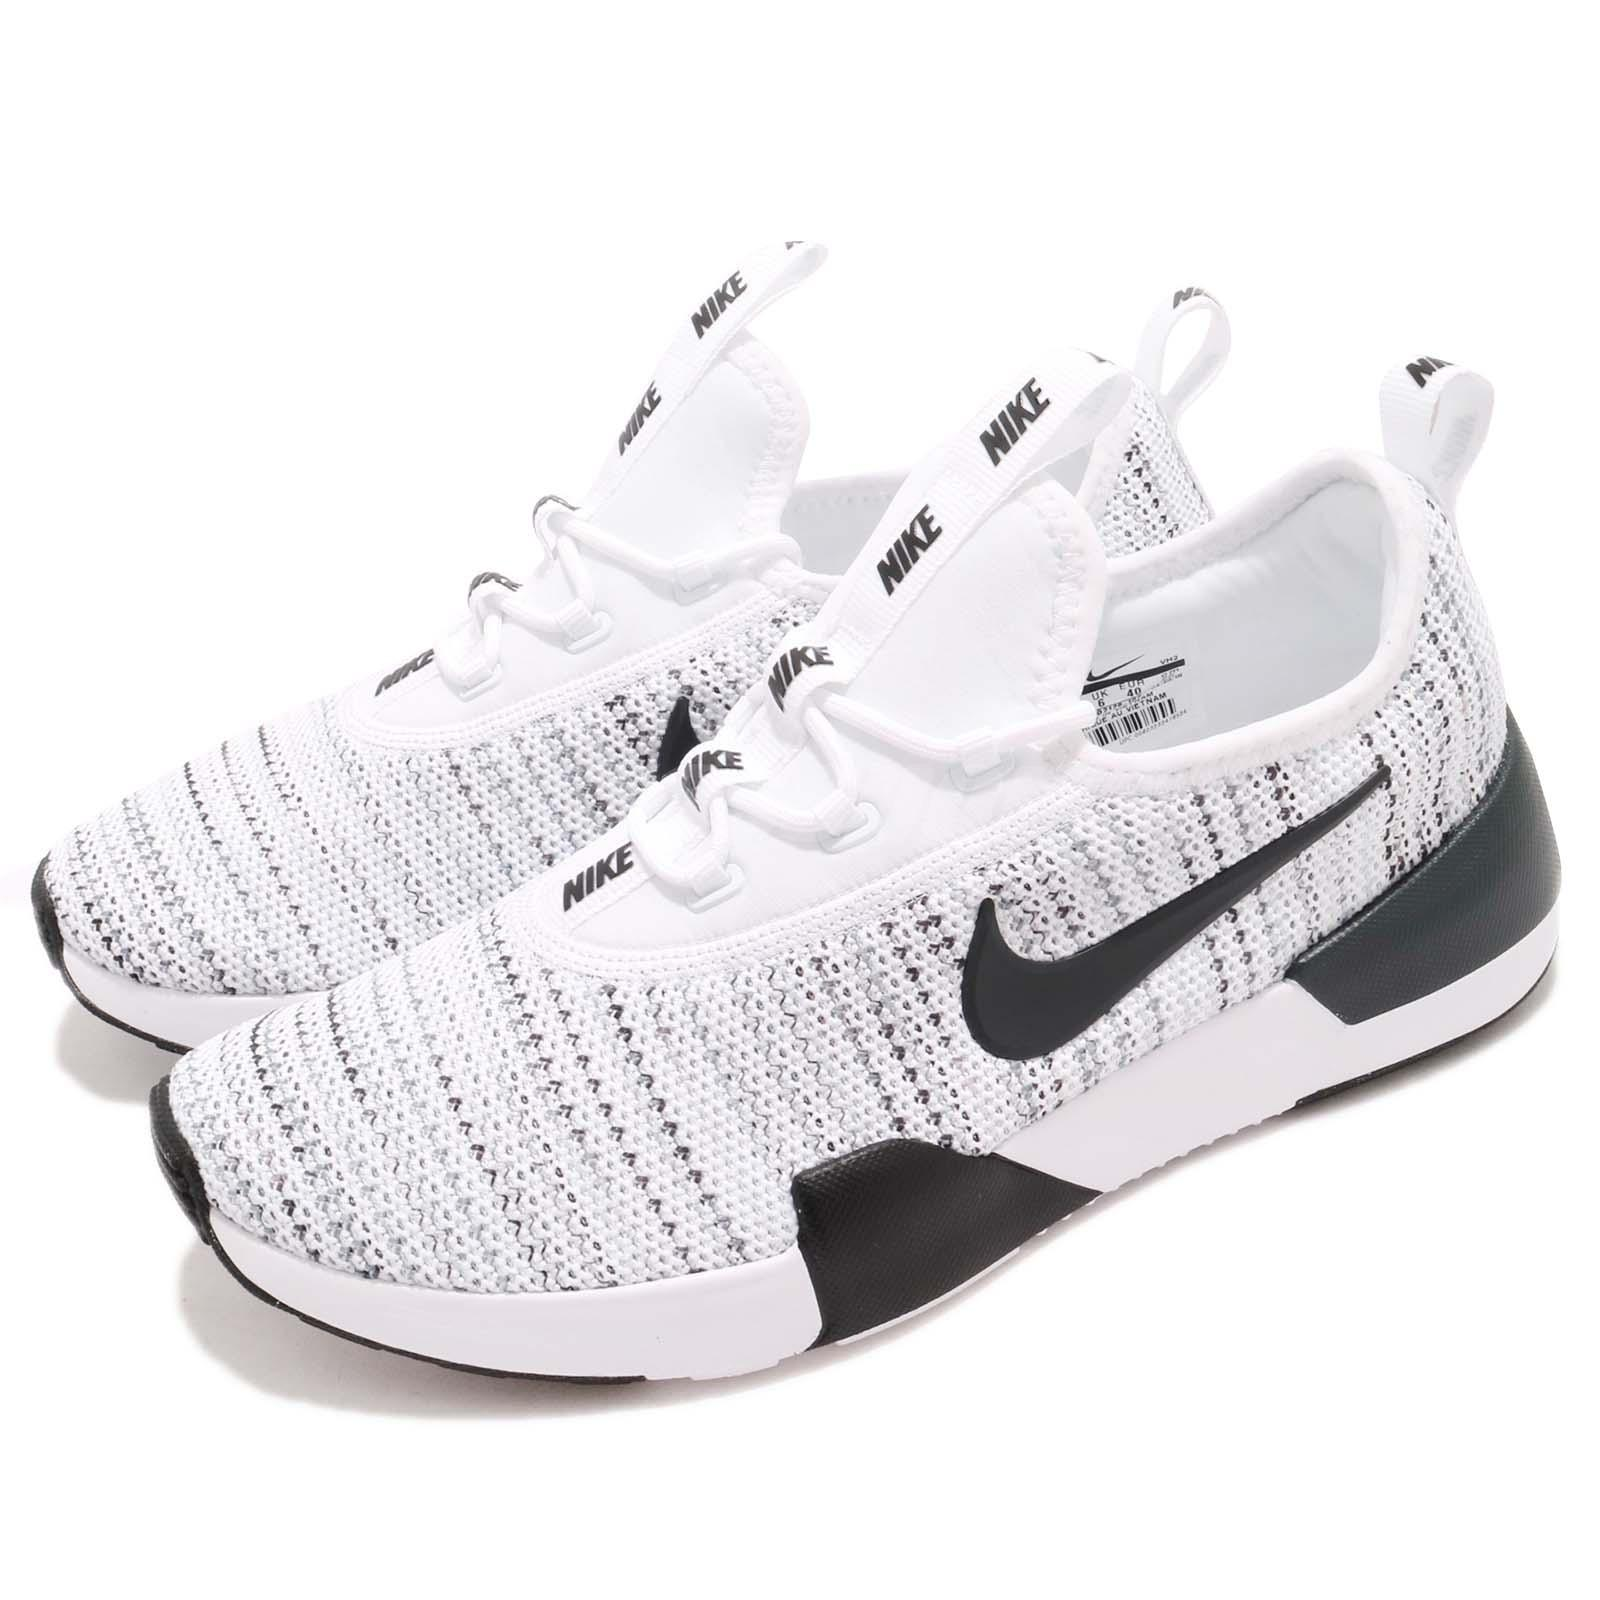 af499636a4dd0 Details about Nike Ashin Modern SE GS White Black Grey Kids Youth Running  Shoes AO2129-102